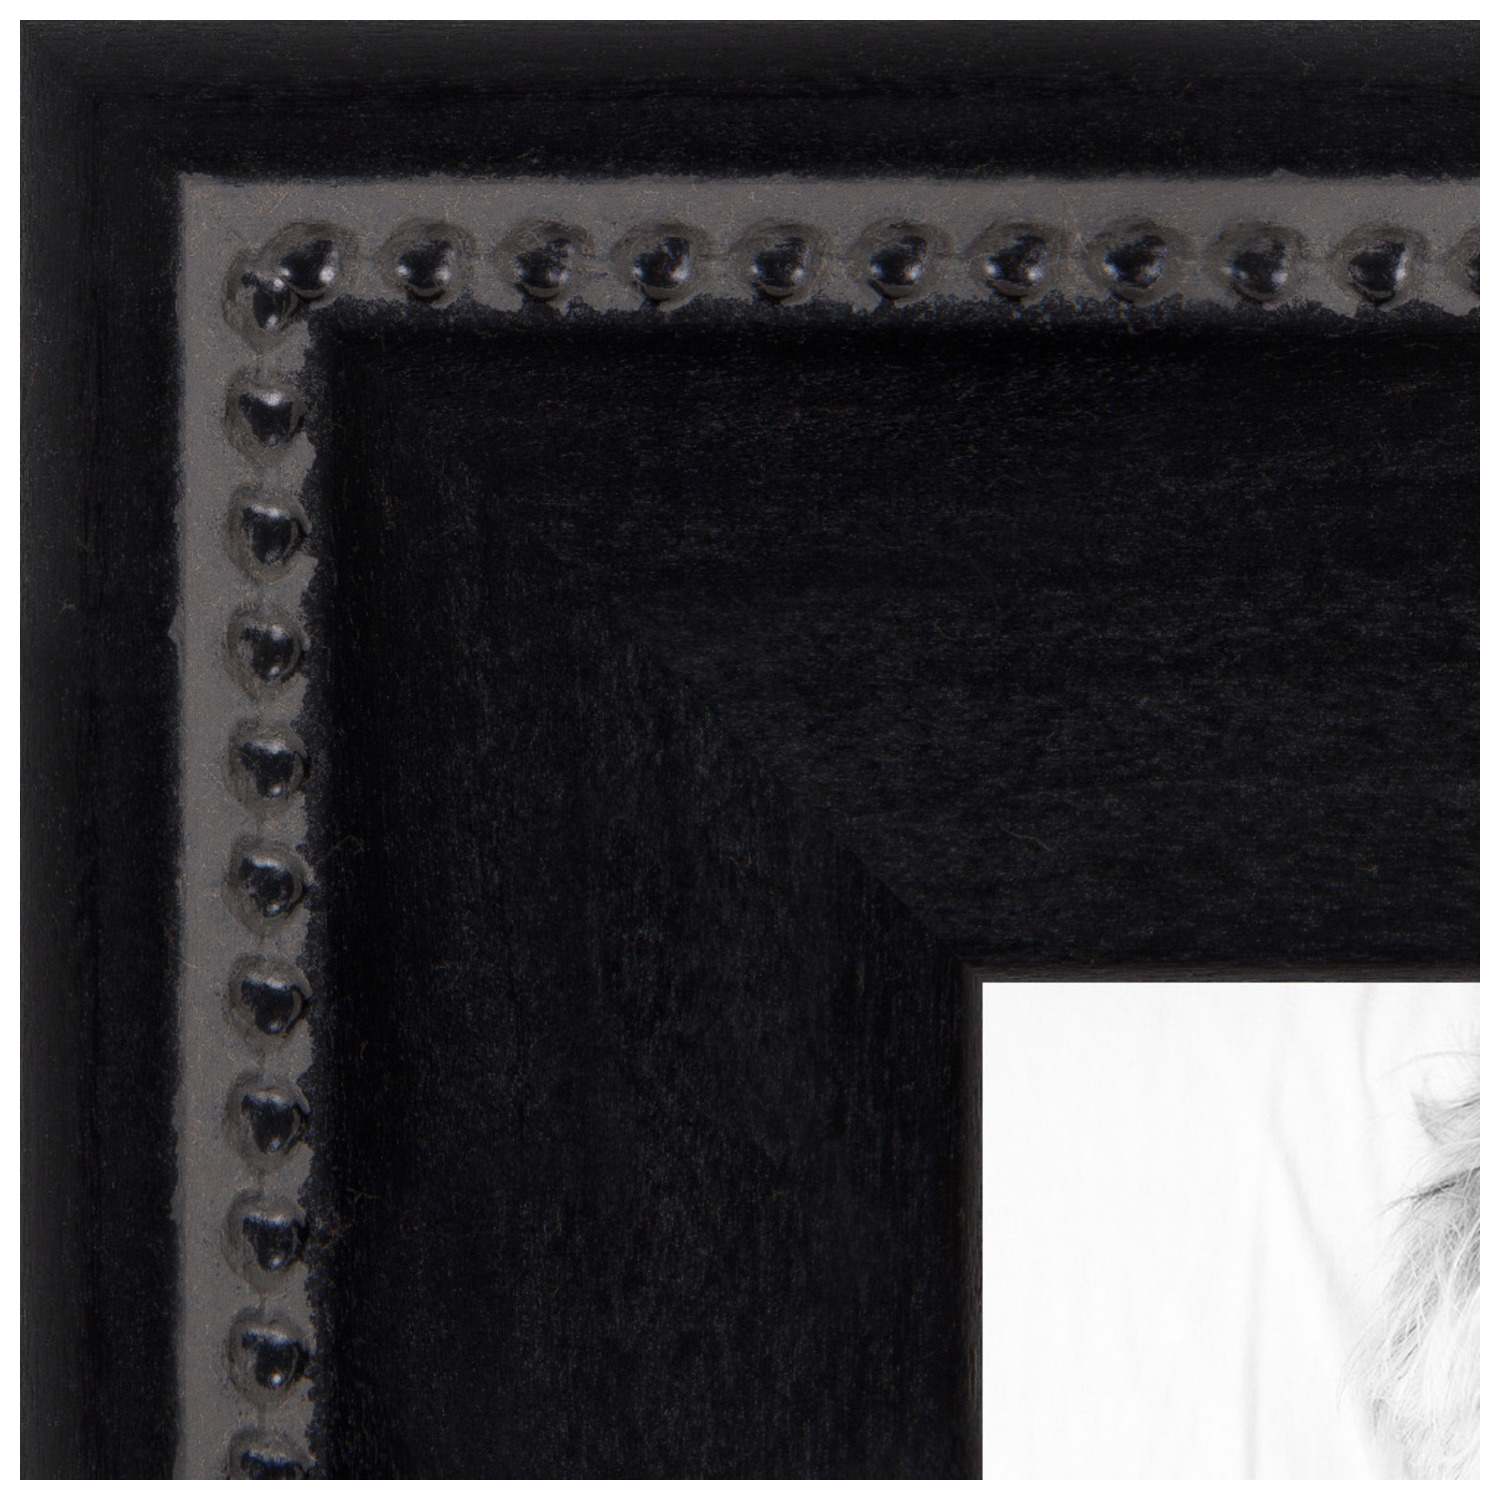 arttoframes 16x20 inch matte black with beads picture frame this black wood poster frame is great for your art or photos comes with styrene 4065